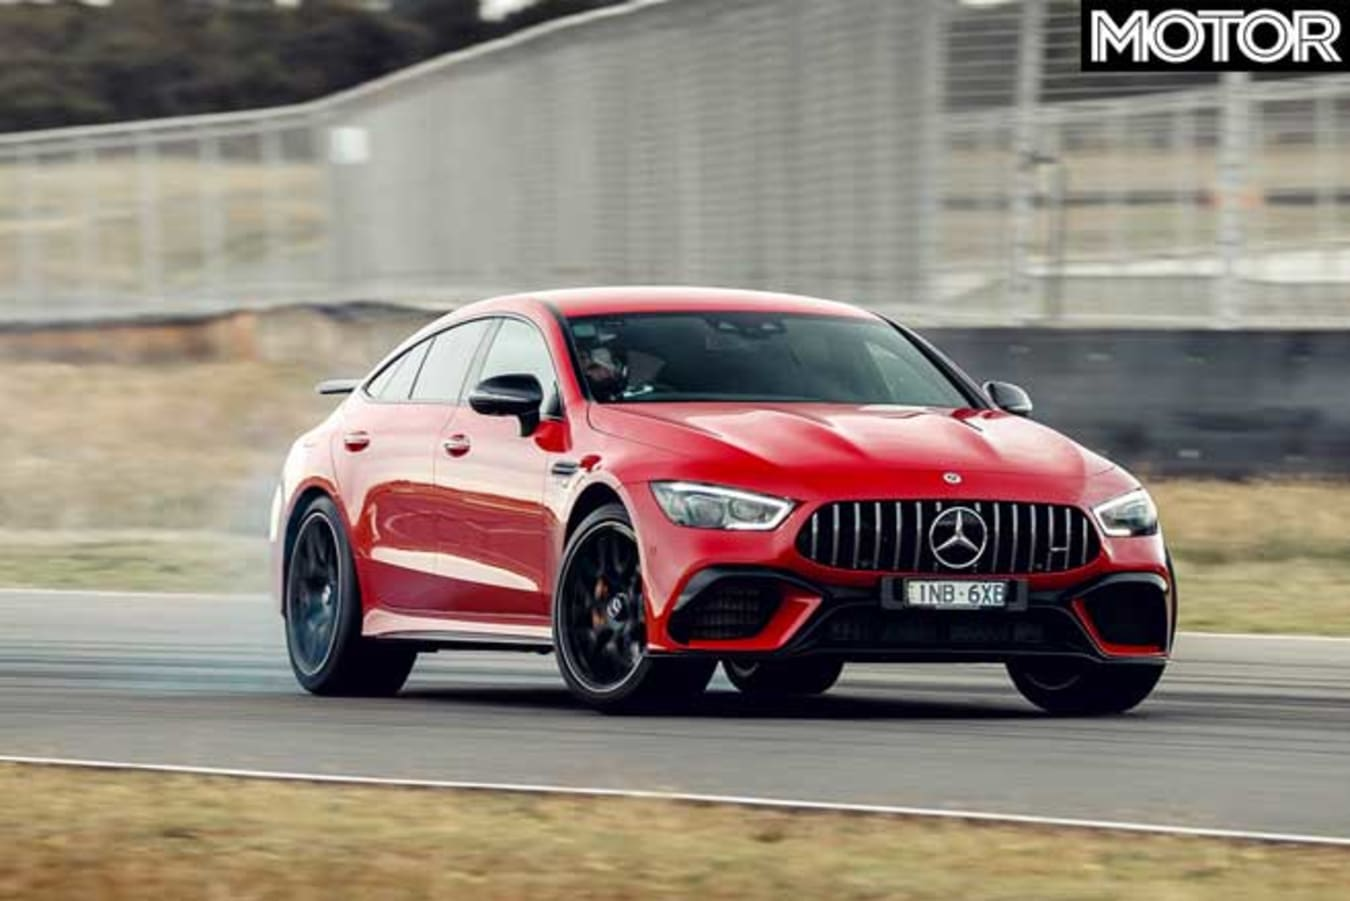 Performance Car Of The Year 2020 Track Test Mercedes AMG GT 63 S Track Jpg